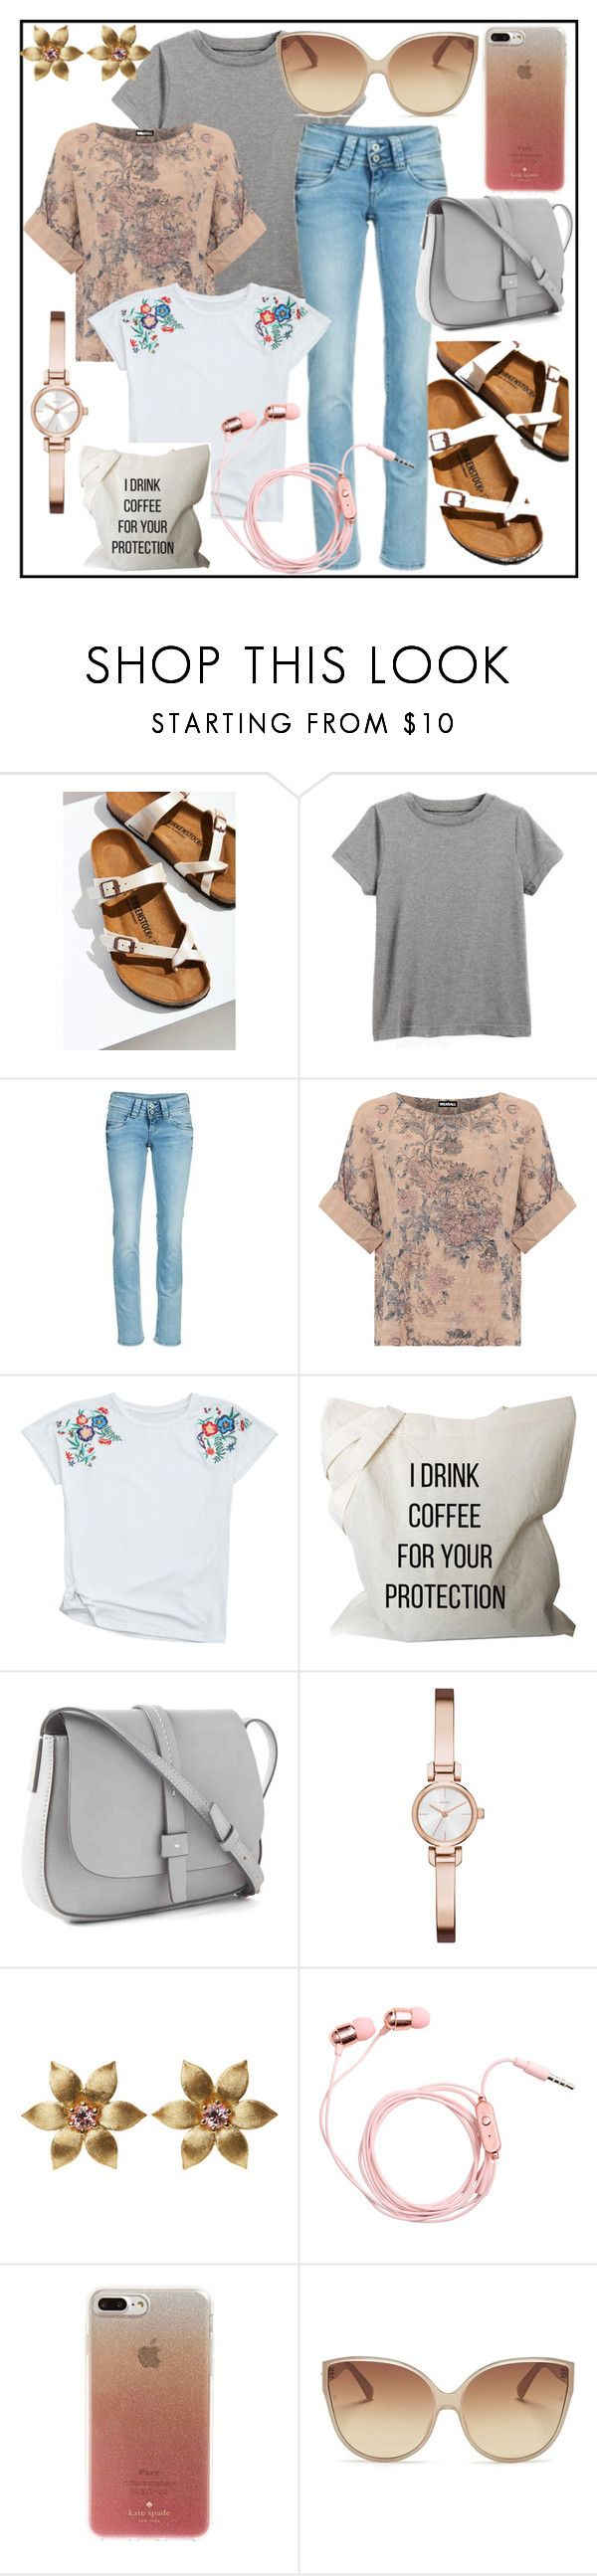 """Summer in the city"" by izostworekblogspot on Polyvore featuring moda, Birkenstock, Pepe Jeans London, WearAll, Gap, DKNY, Kate Spade, Linda Farrow i plus size clothing"